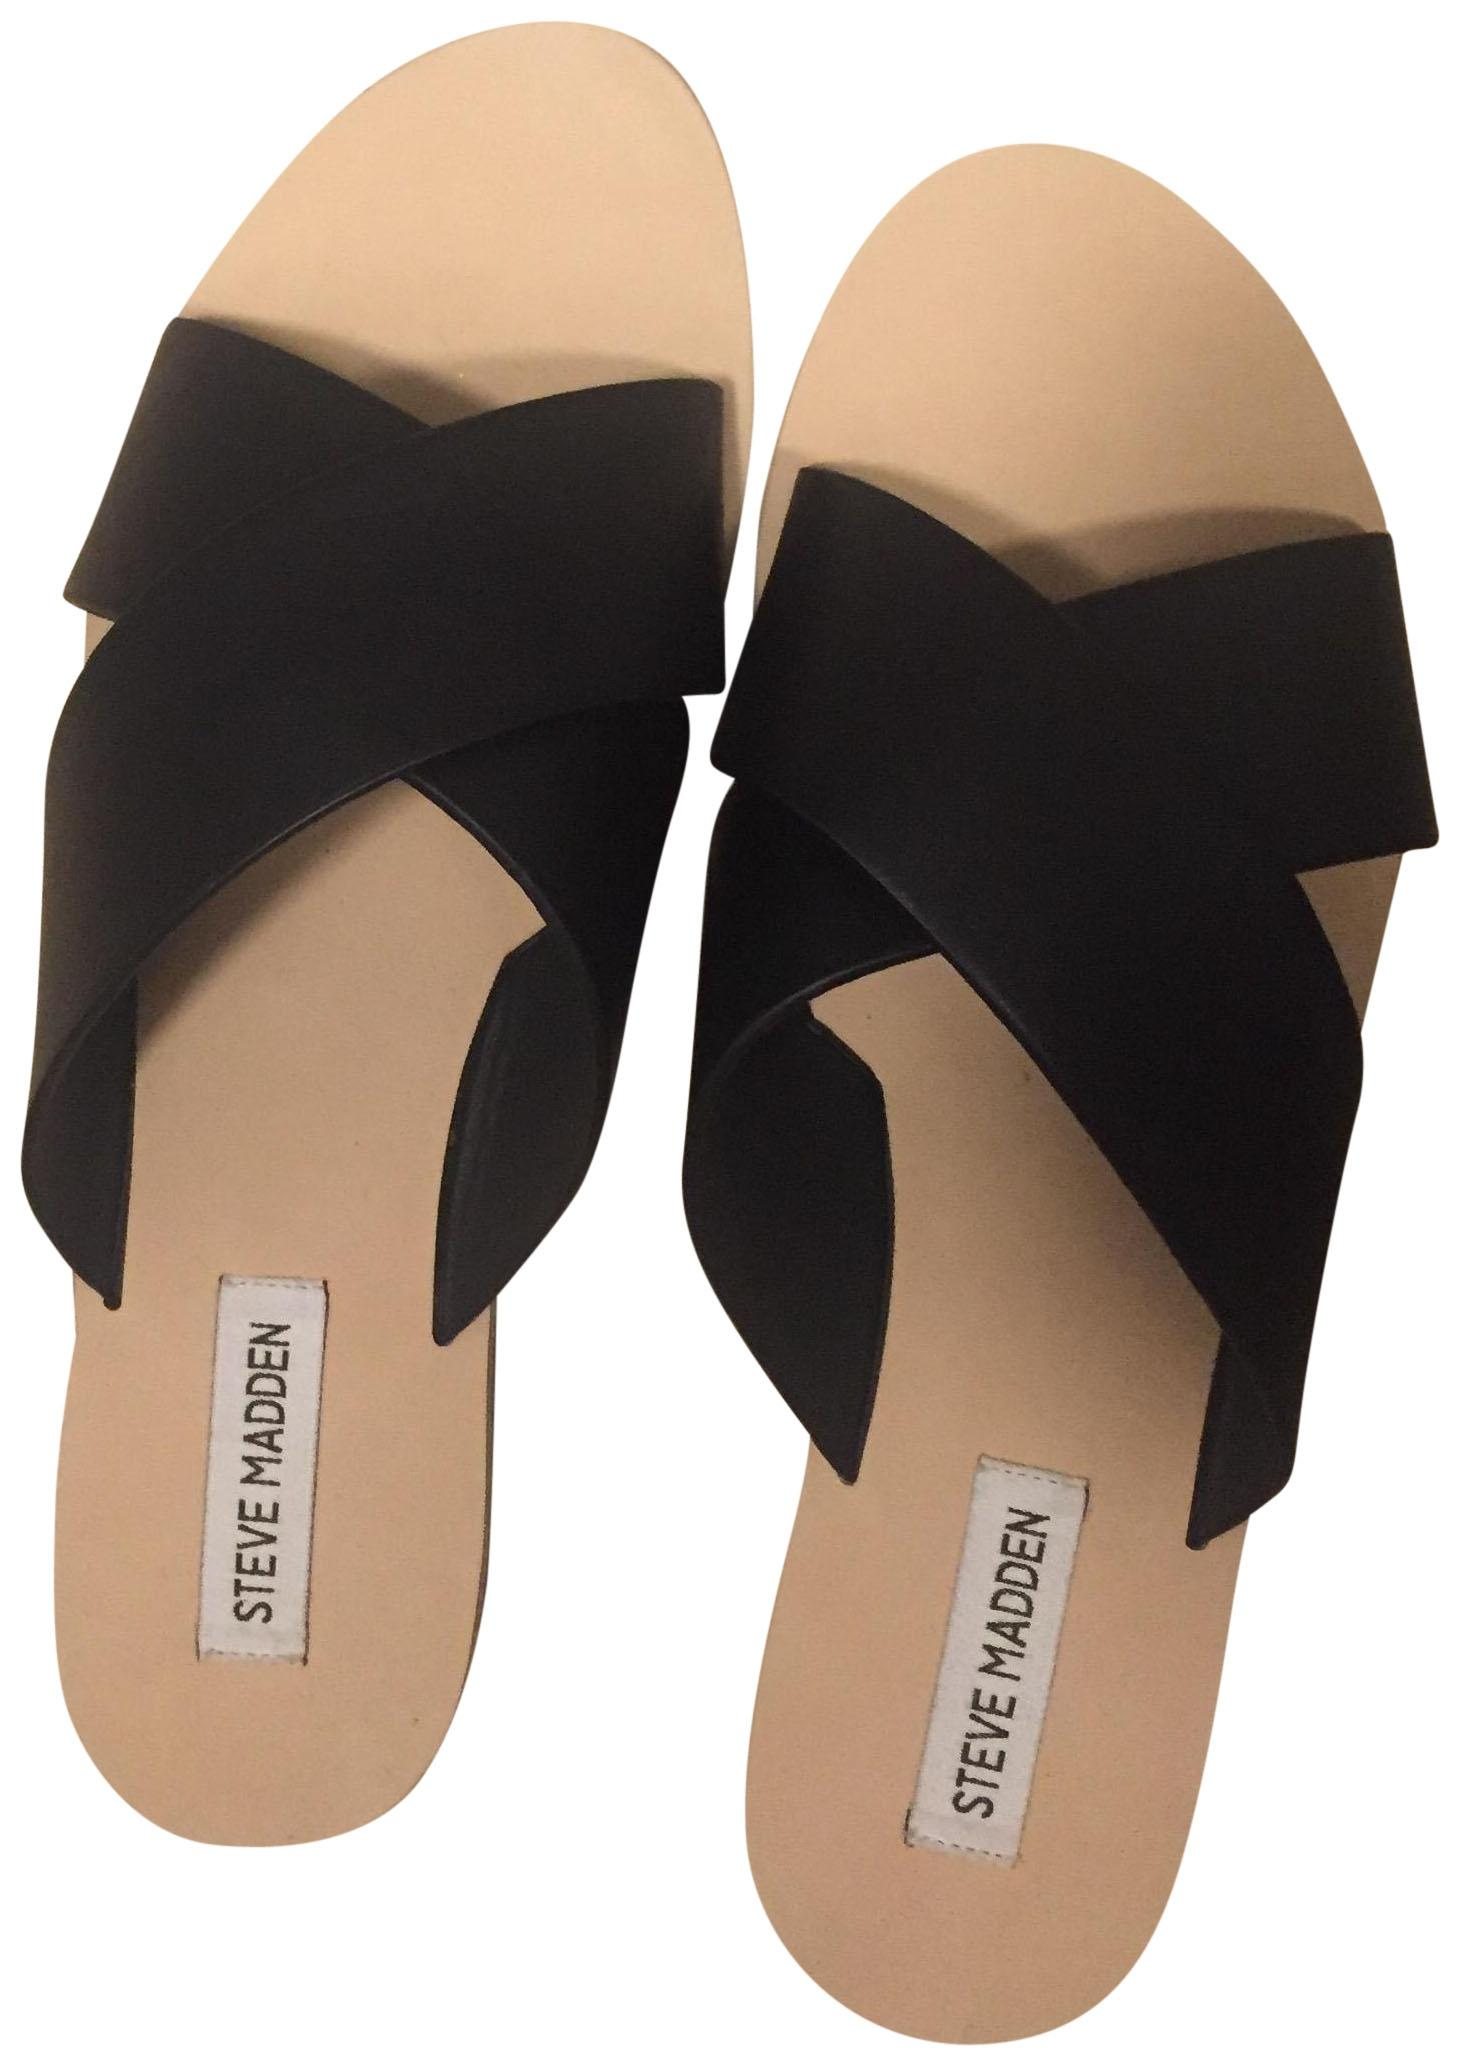 c0aaf067e348 Steve Madden Black Crisscross Leather Slide Slide Slide Sandals Size US 11  Regular (M